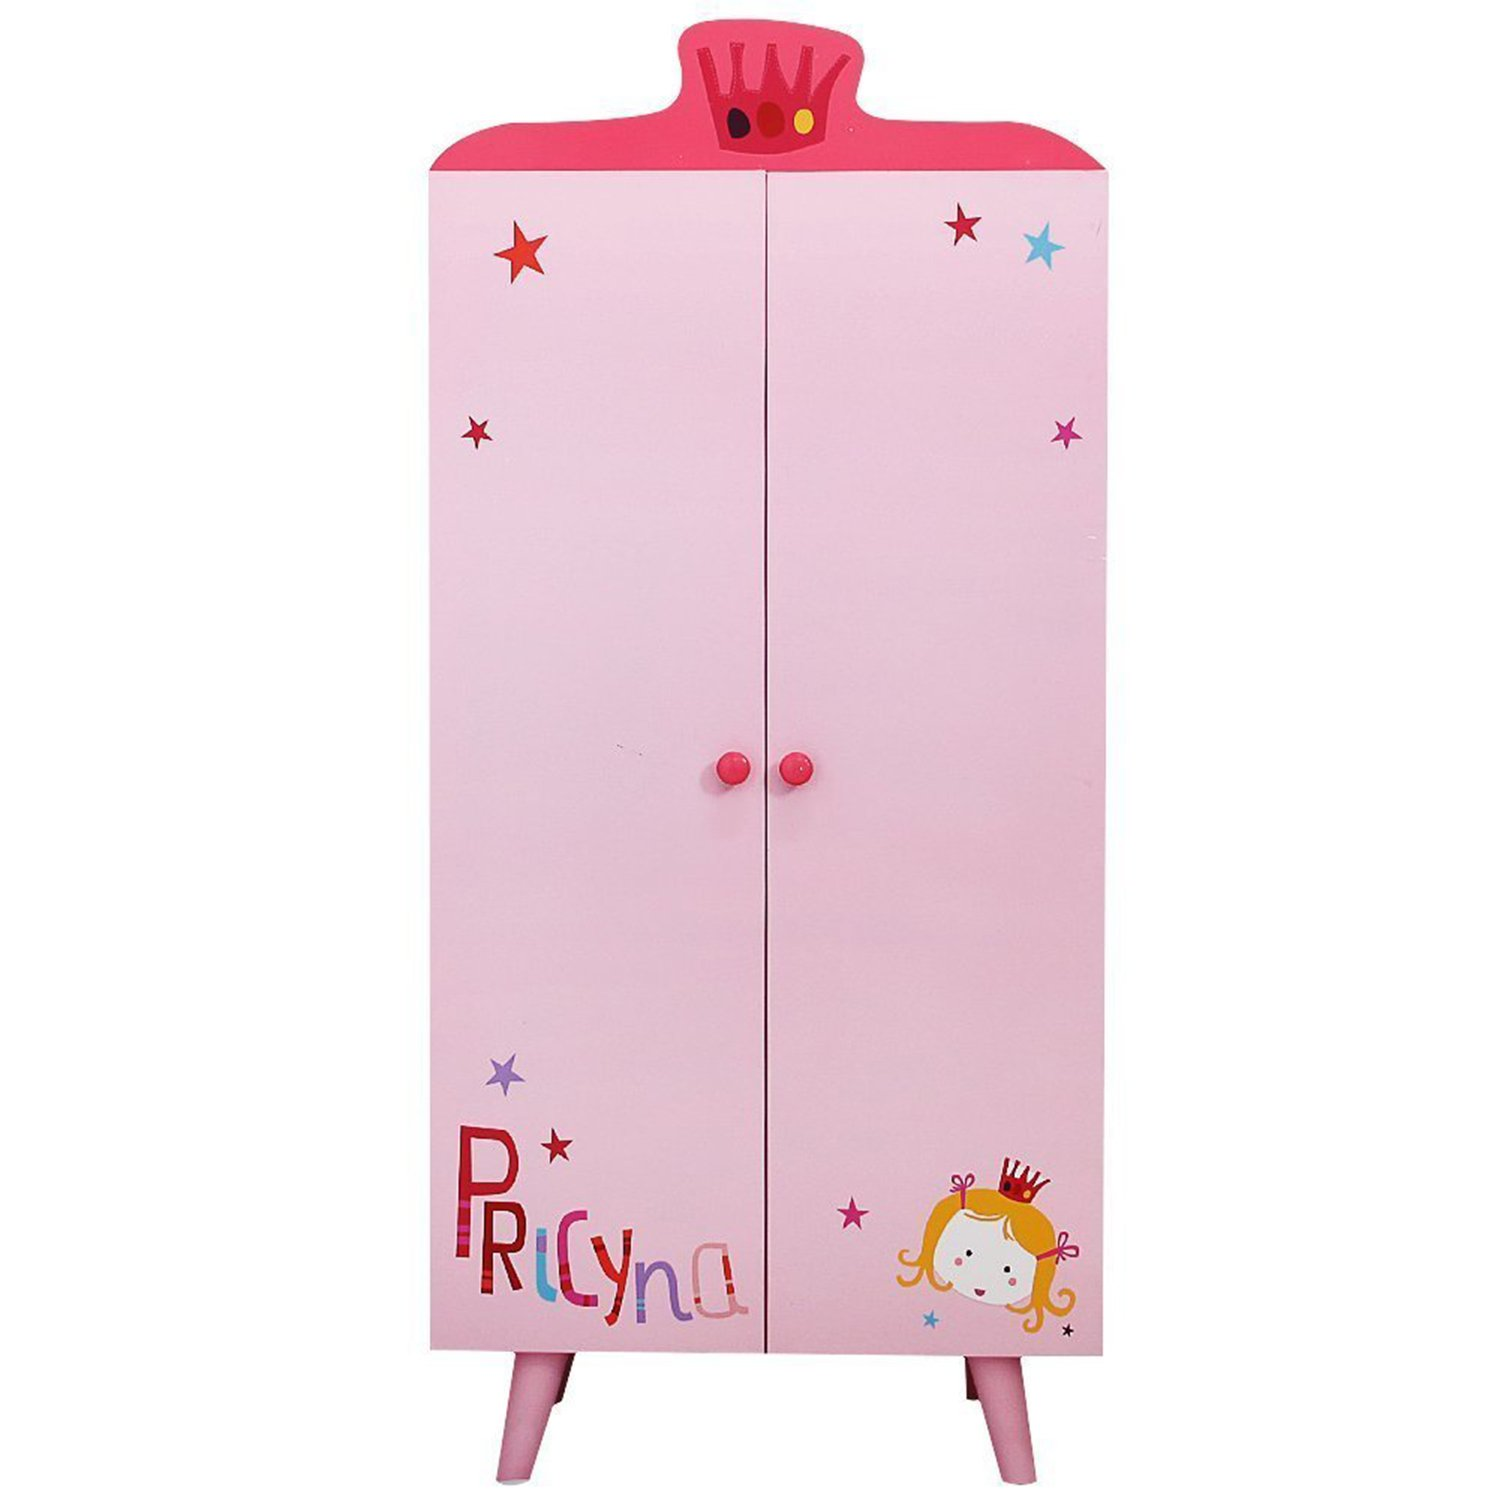 Labebe Children Room Furniture Lovely Wooden Armoire Closet/Wardrobe for Girls Toddler, with 5 Separated Shelves, Perfect for Hanging Dress-up Clothes, Ideal Kids' Birthday Gift - Princess Pink